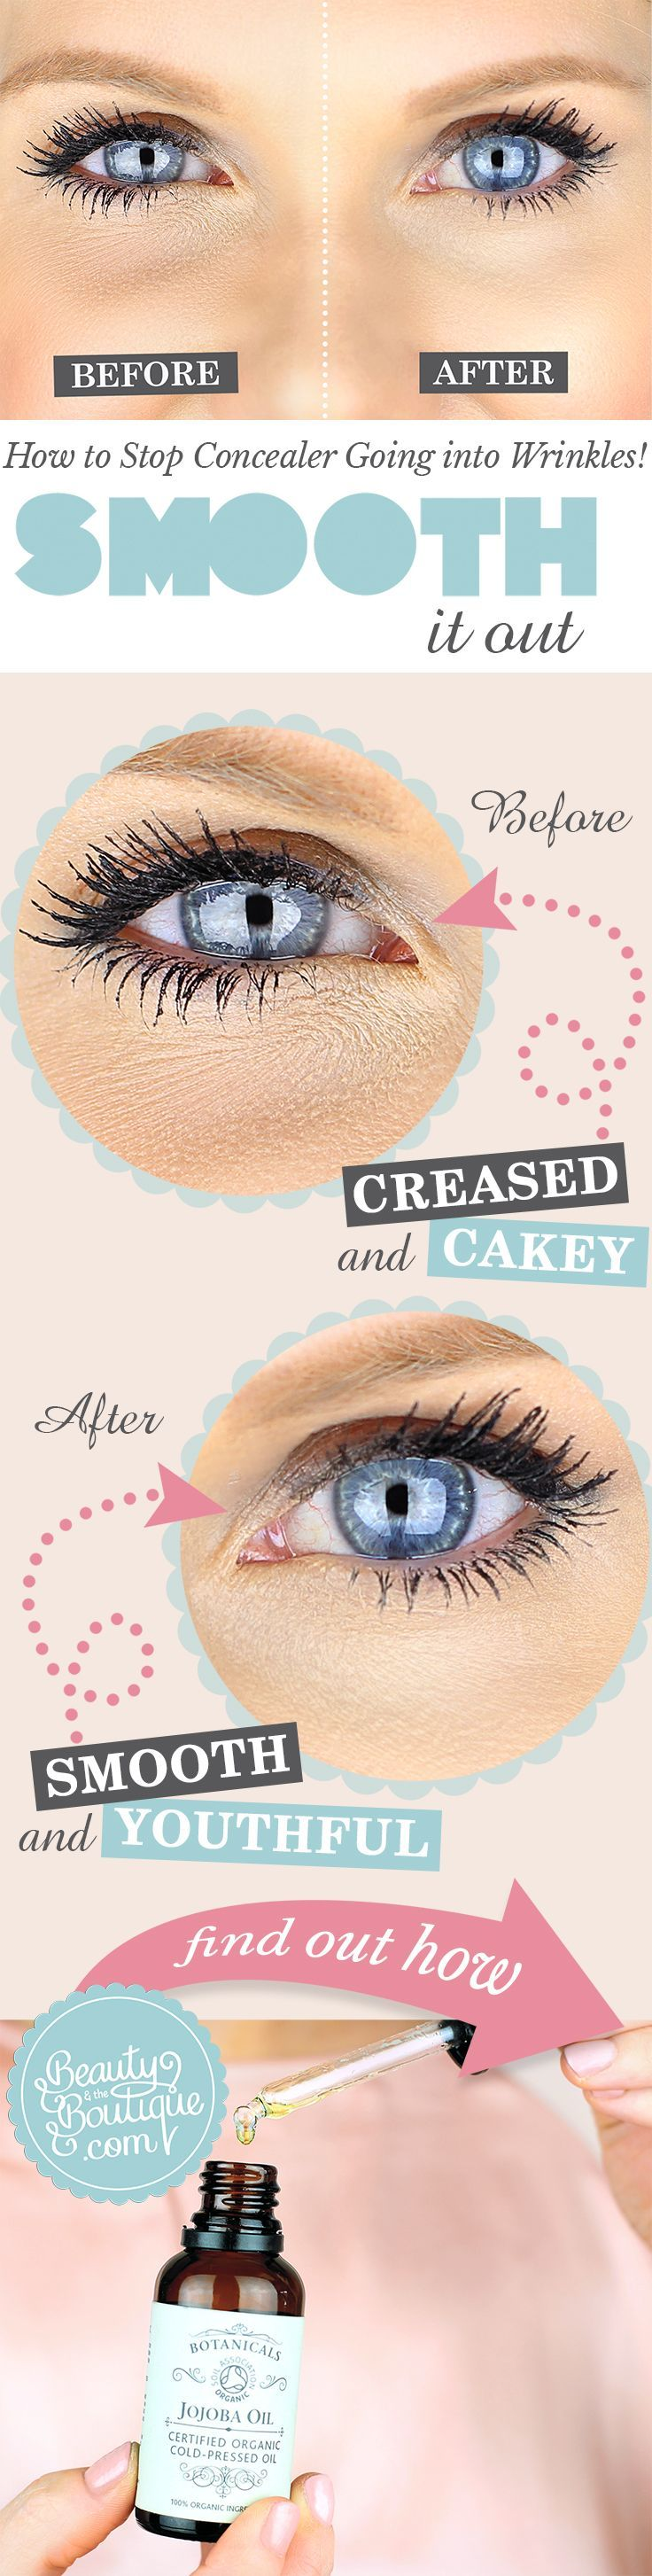 How to Stop Concealer Going into Wrinkles!